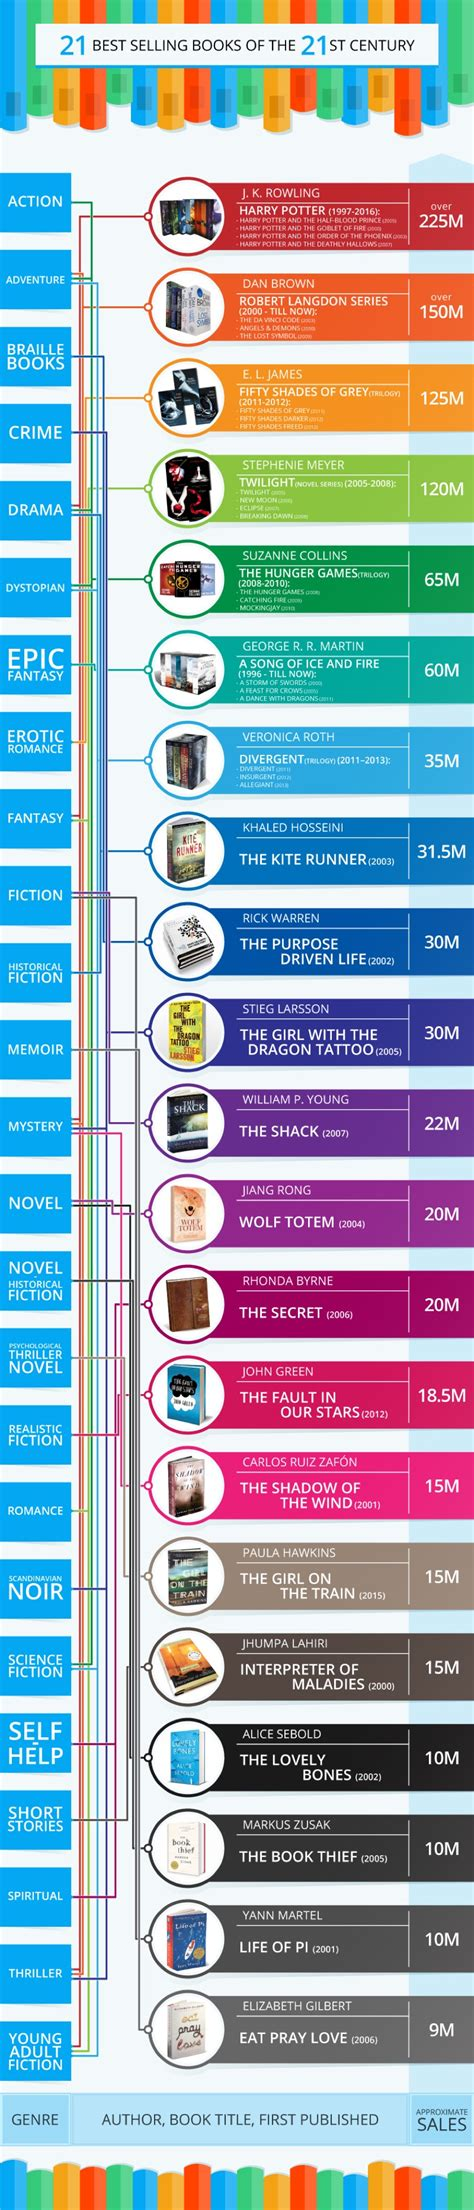 best selling book series best selling books and book series of the 21st century